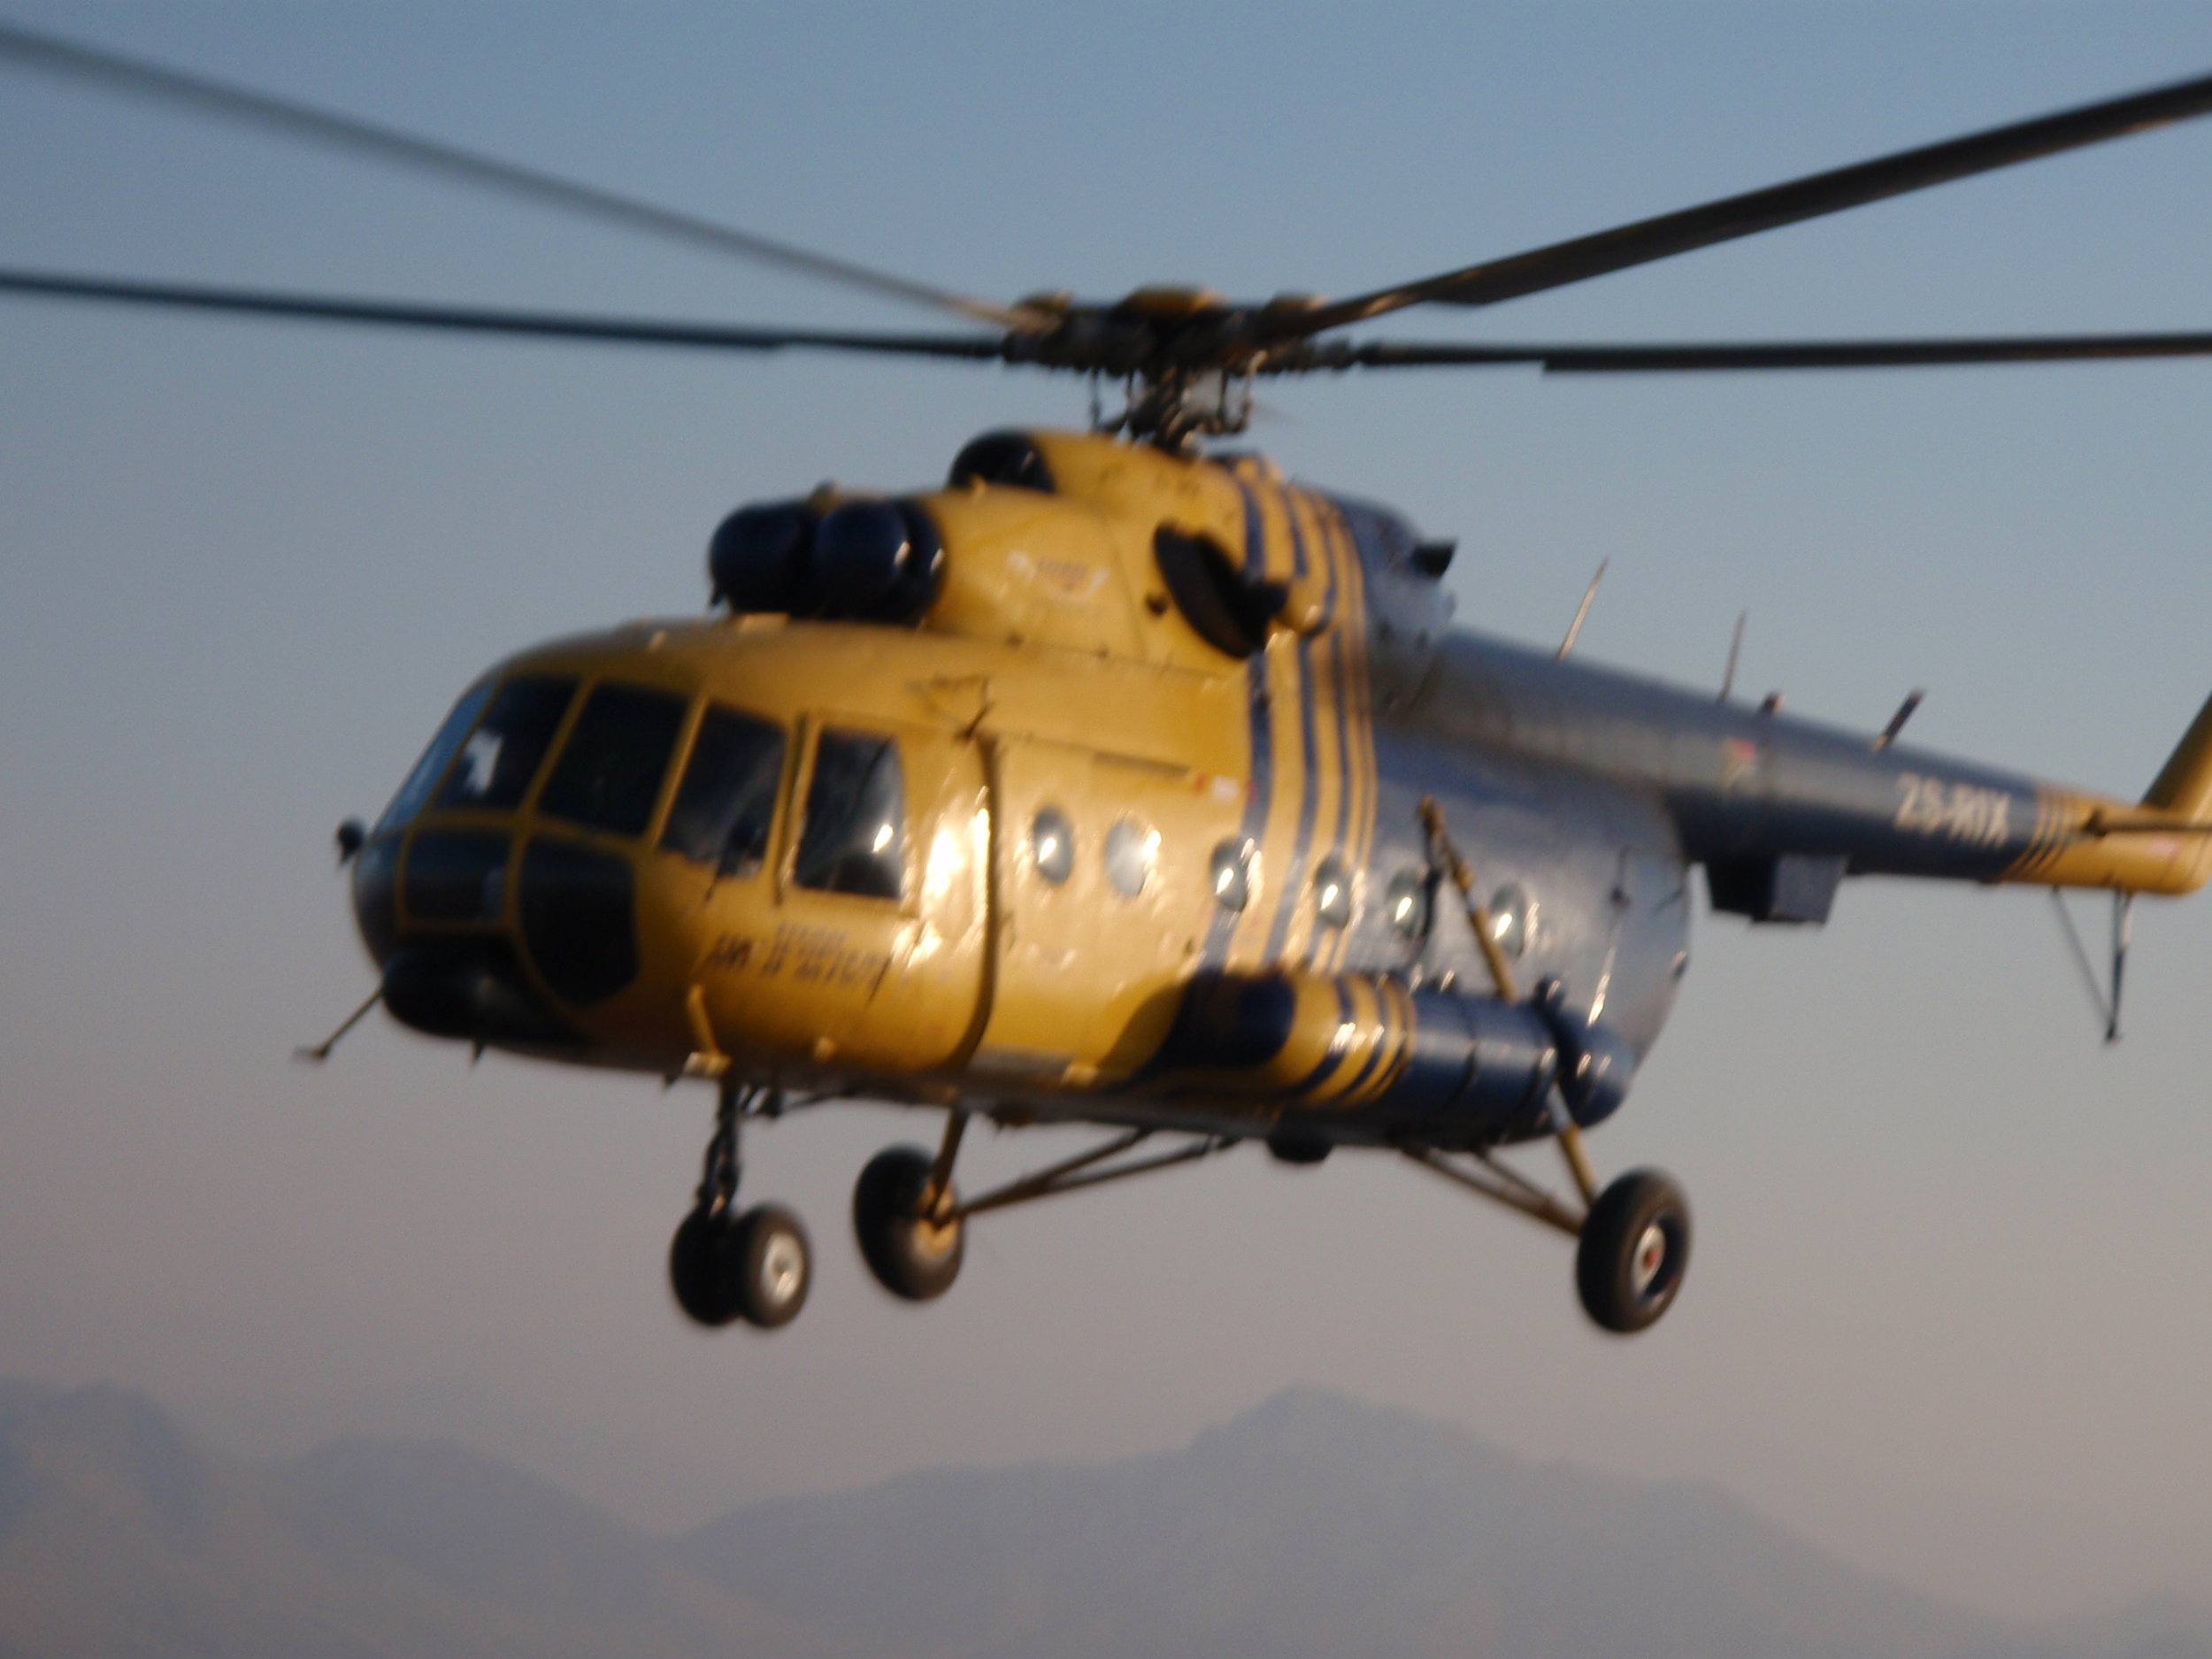 Learn what happens next in this helicopter flight in Afghanistan. Lessons that can be applied in all workplace environments concerned with health & safety